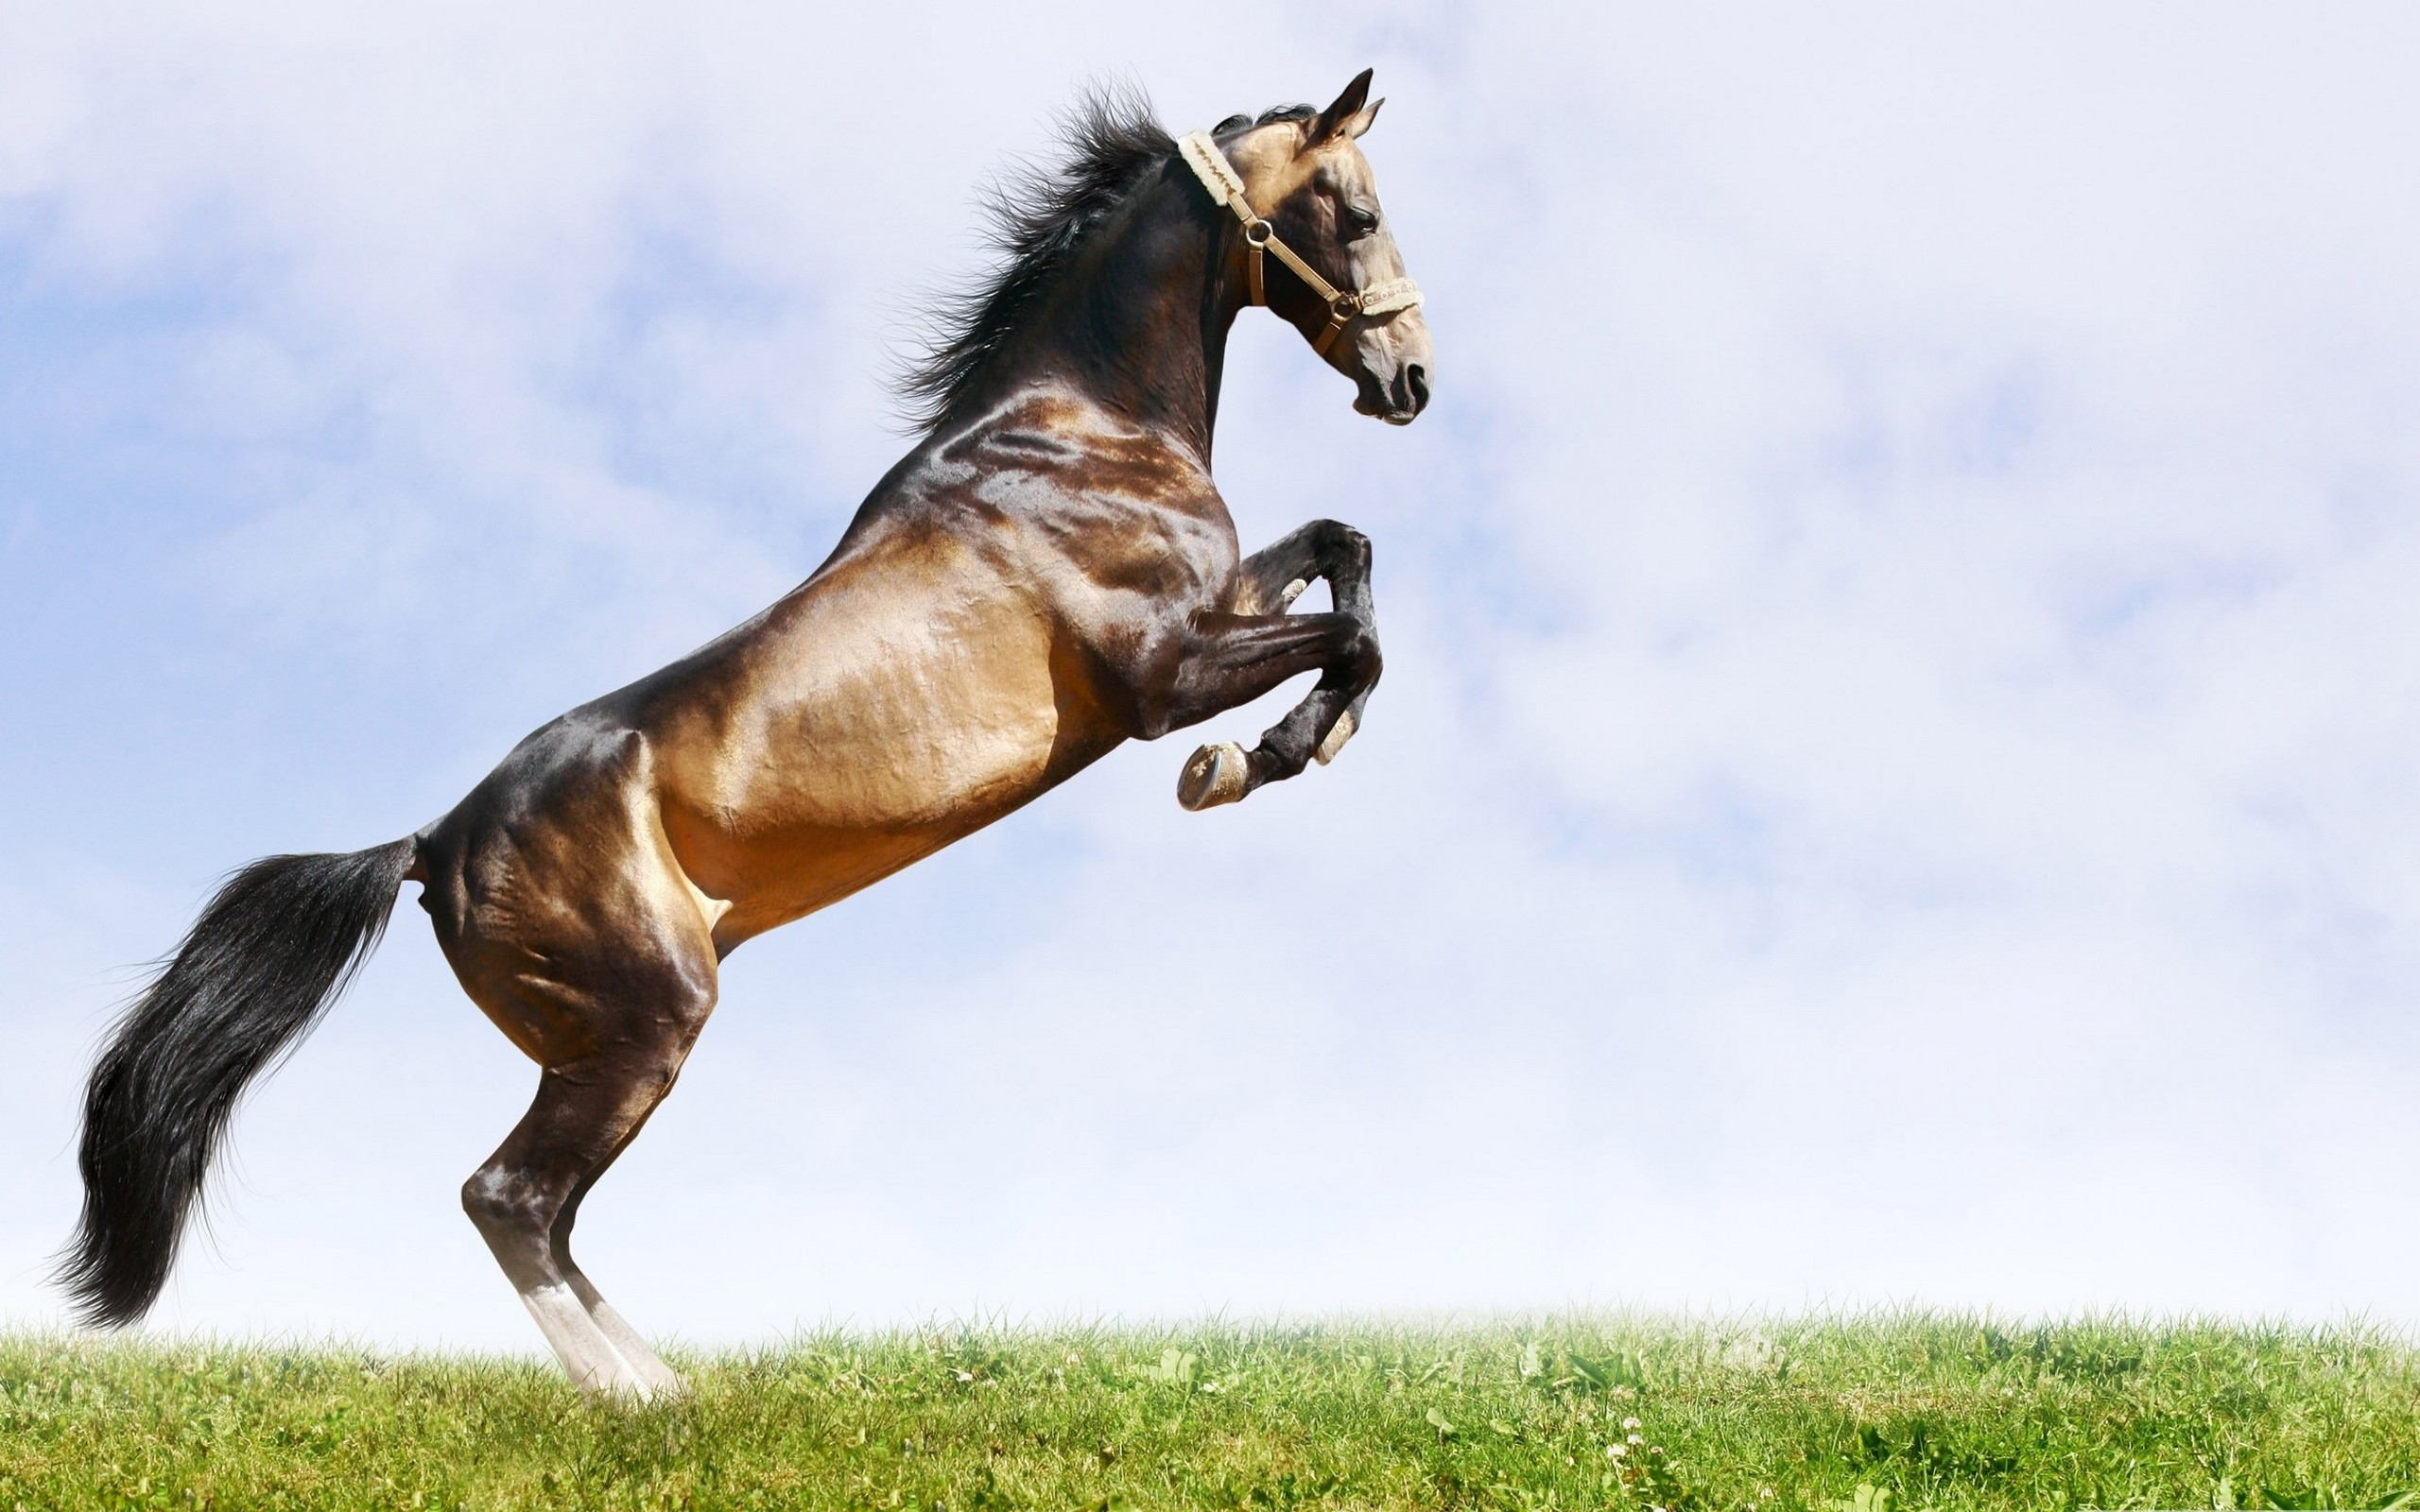 2560x1600 gif horse images | Home - Wallpapers / Photographs - Animals - Brown horse